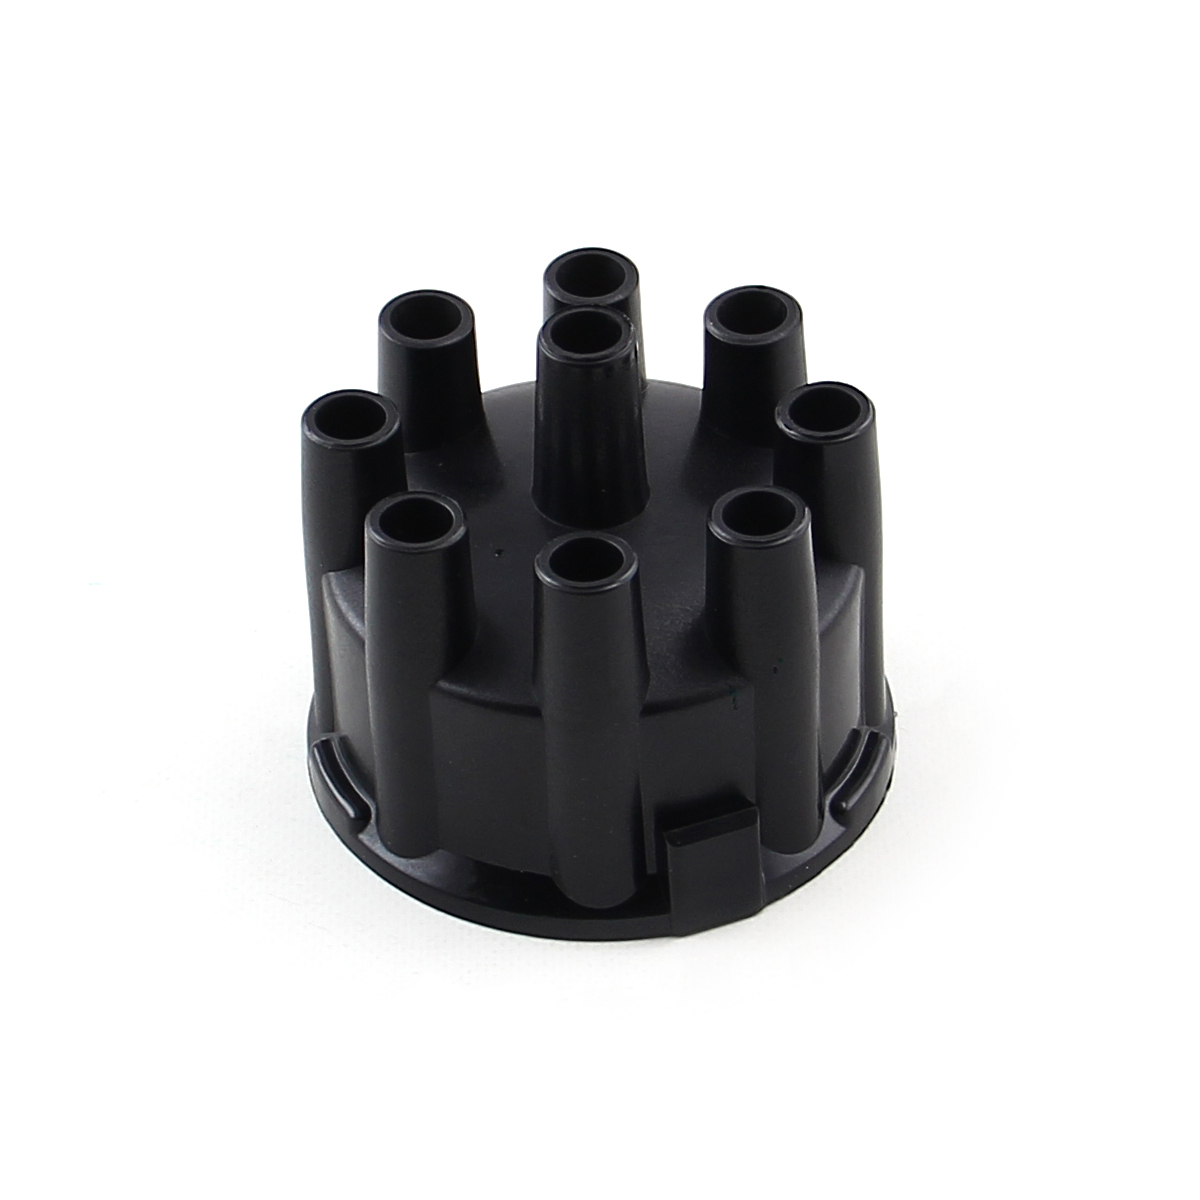 7000 and 8000 Series Female 90.2 Distributor Cap - Black